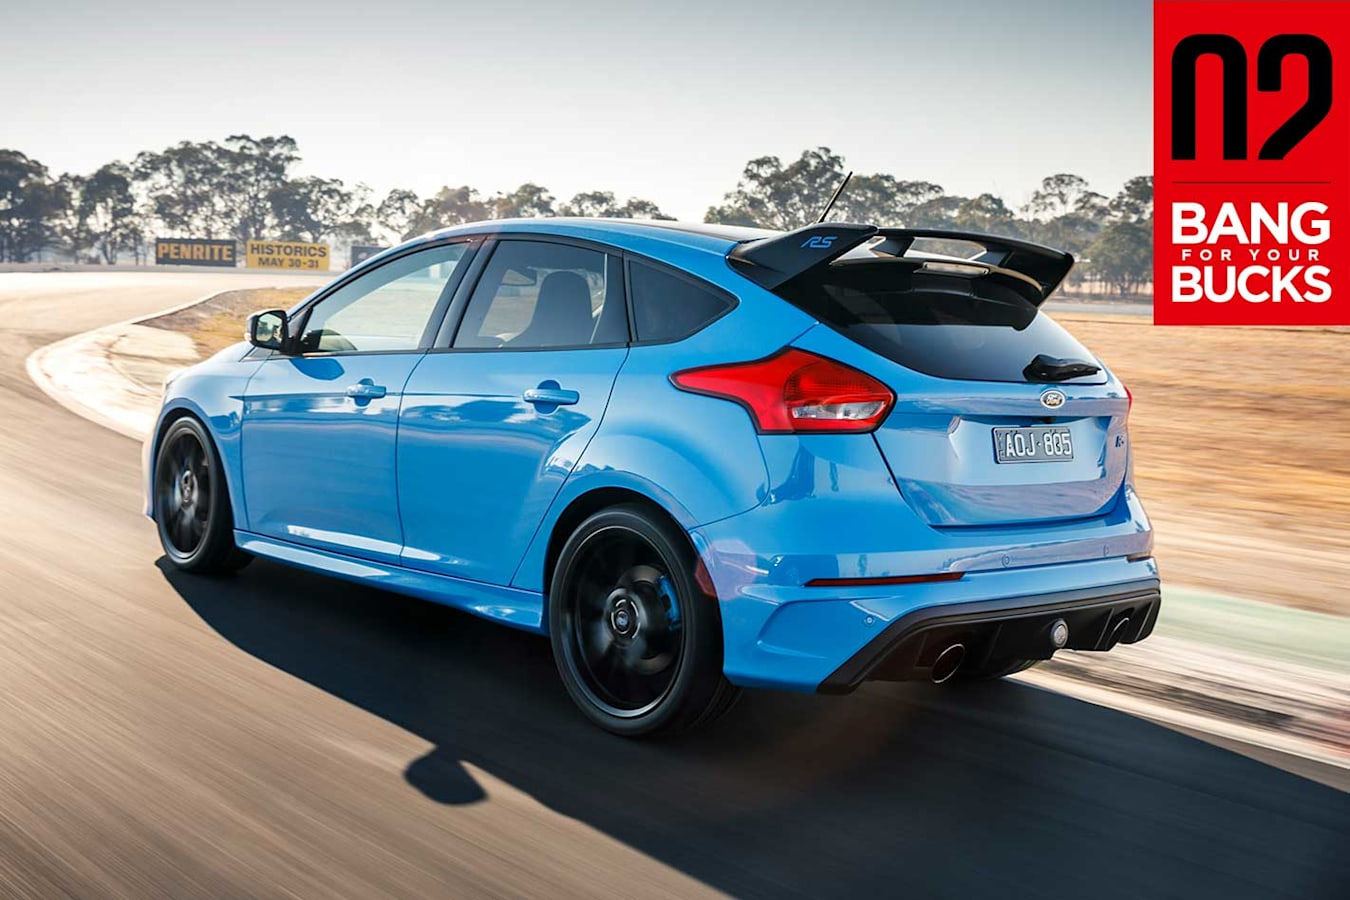 2018 Ford Focus RS Limited Edition BFYB 18 Results Jpg